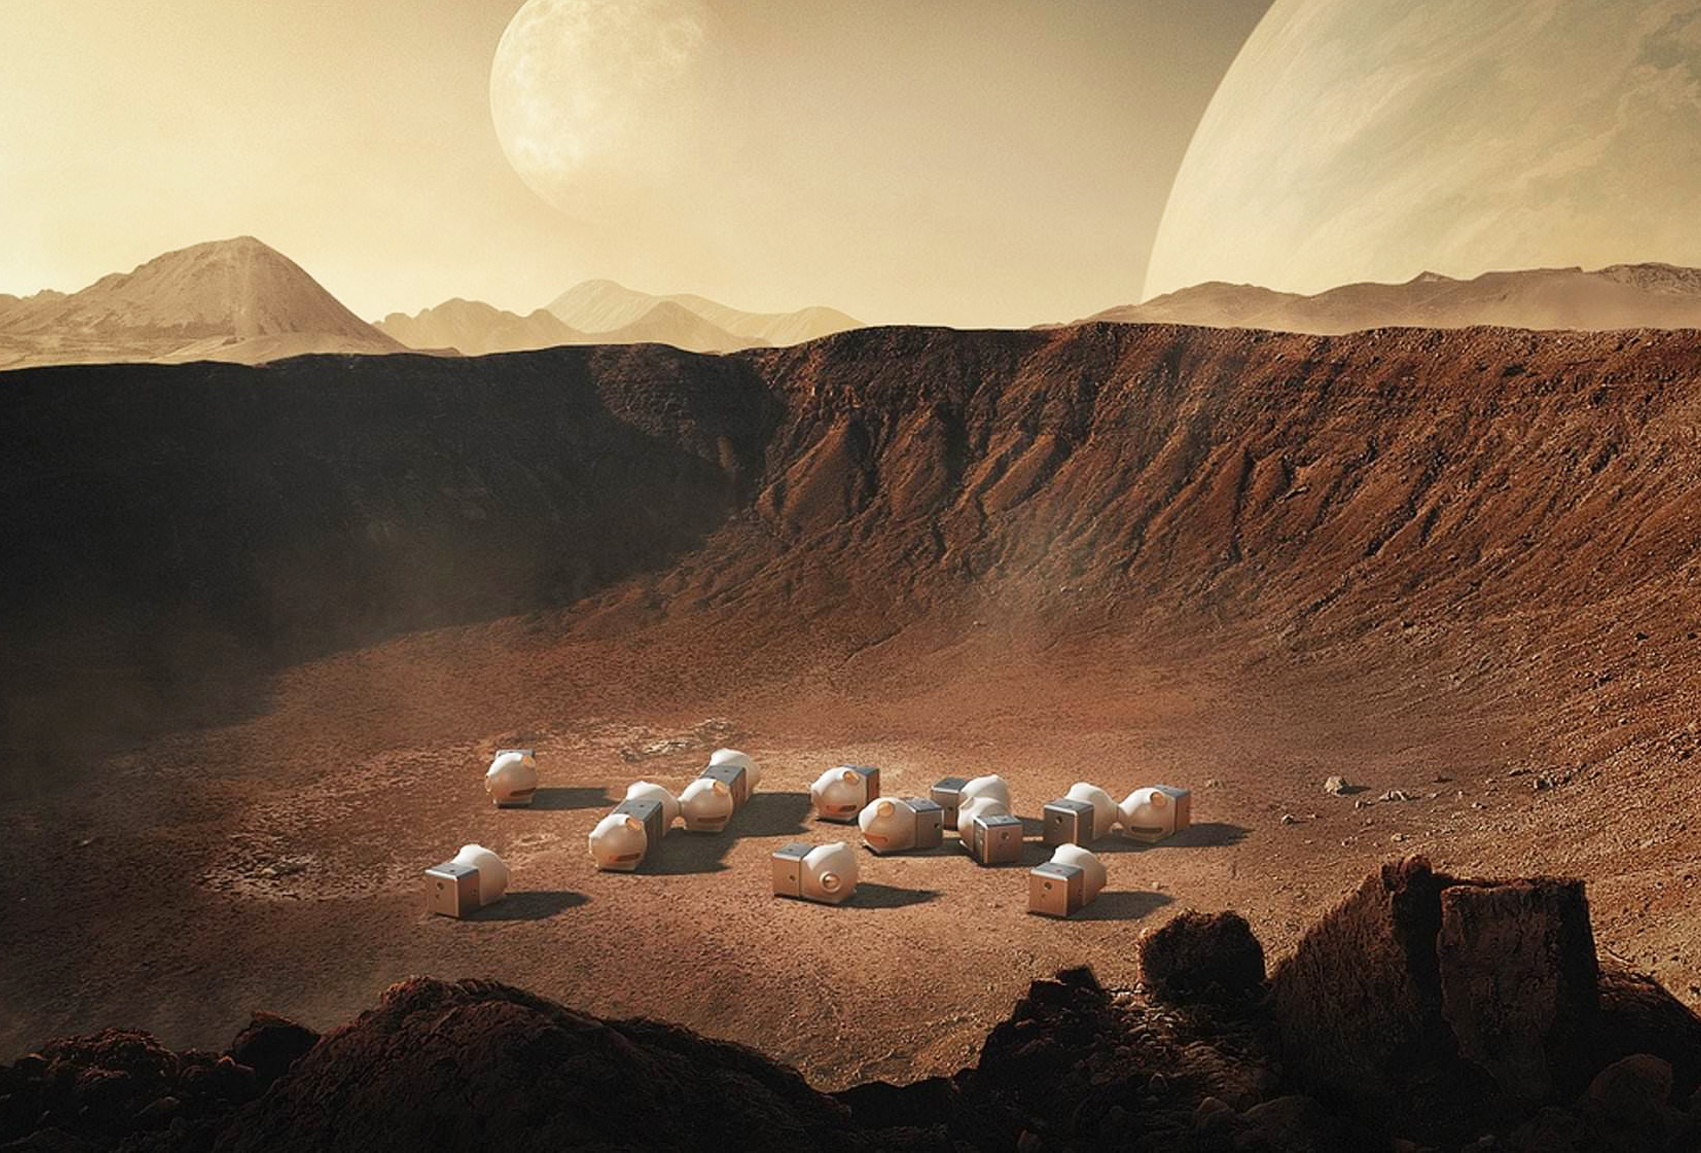 Architecture on Mars : Projects for Life on the Red Planet